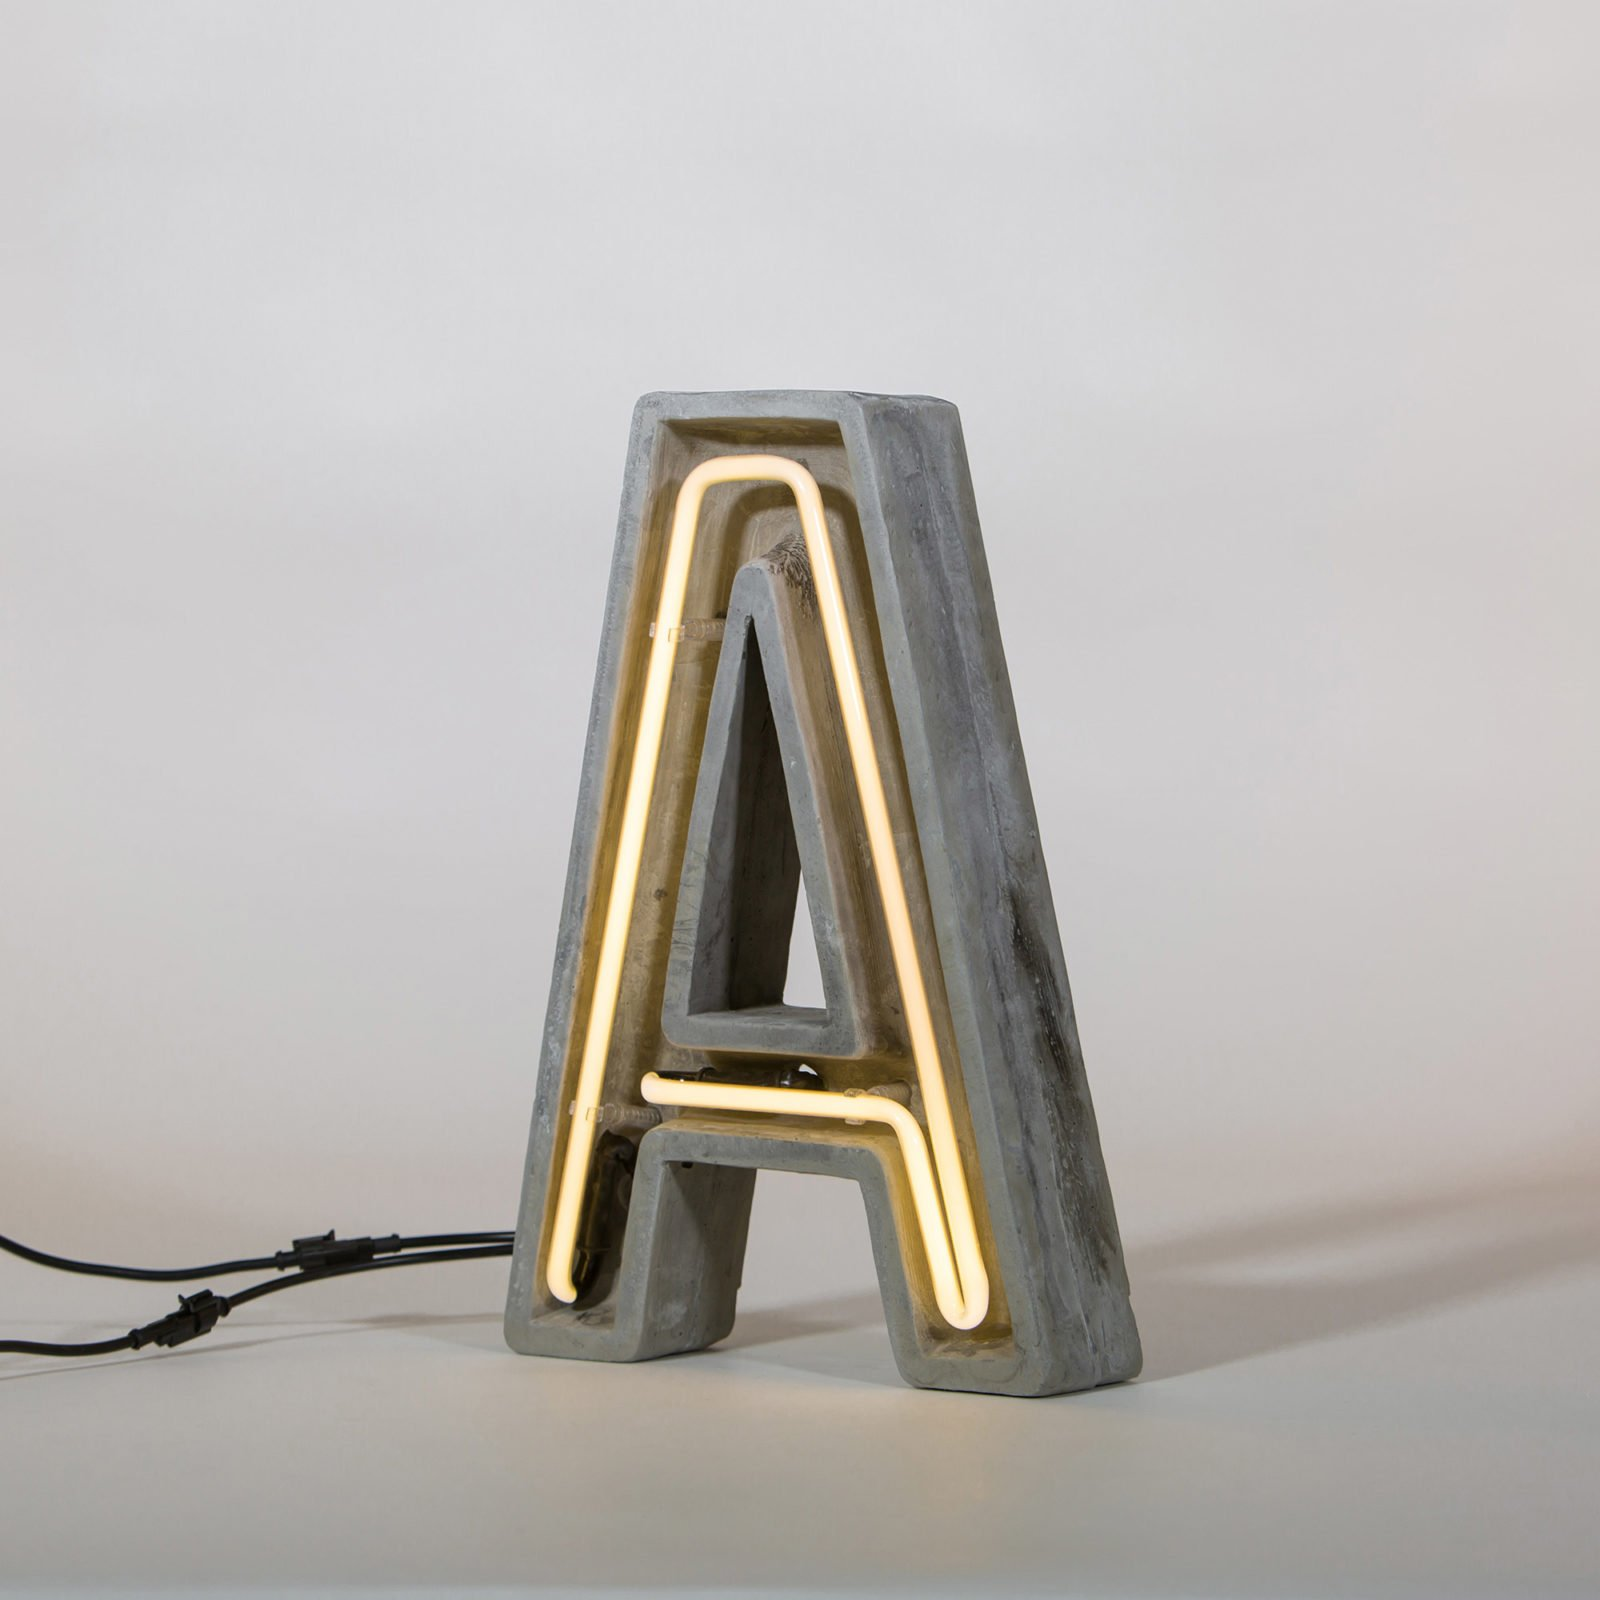 Alphacrete, Concrete Neon Light – A-32306